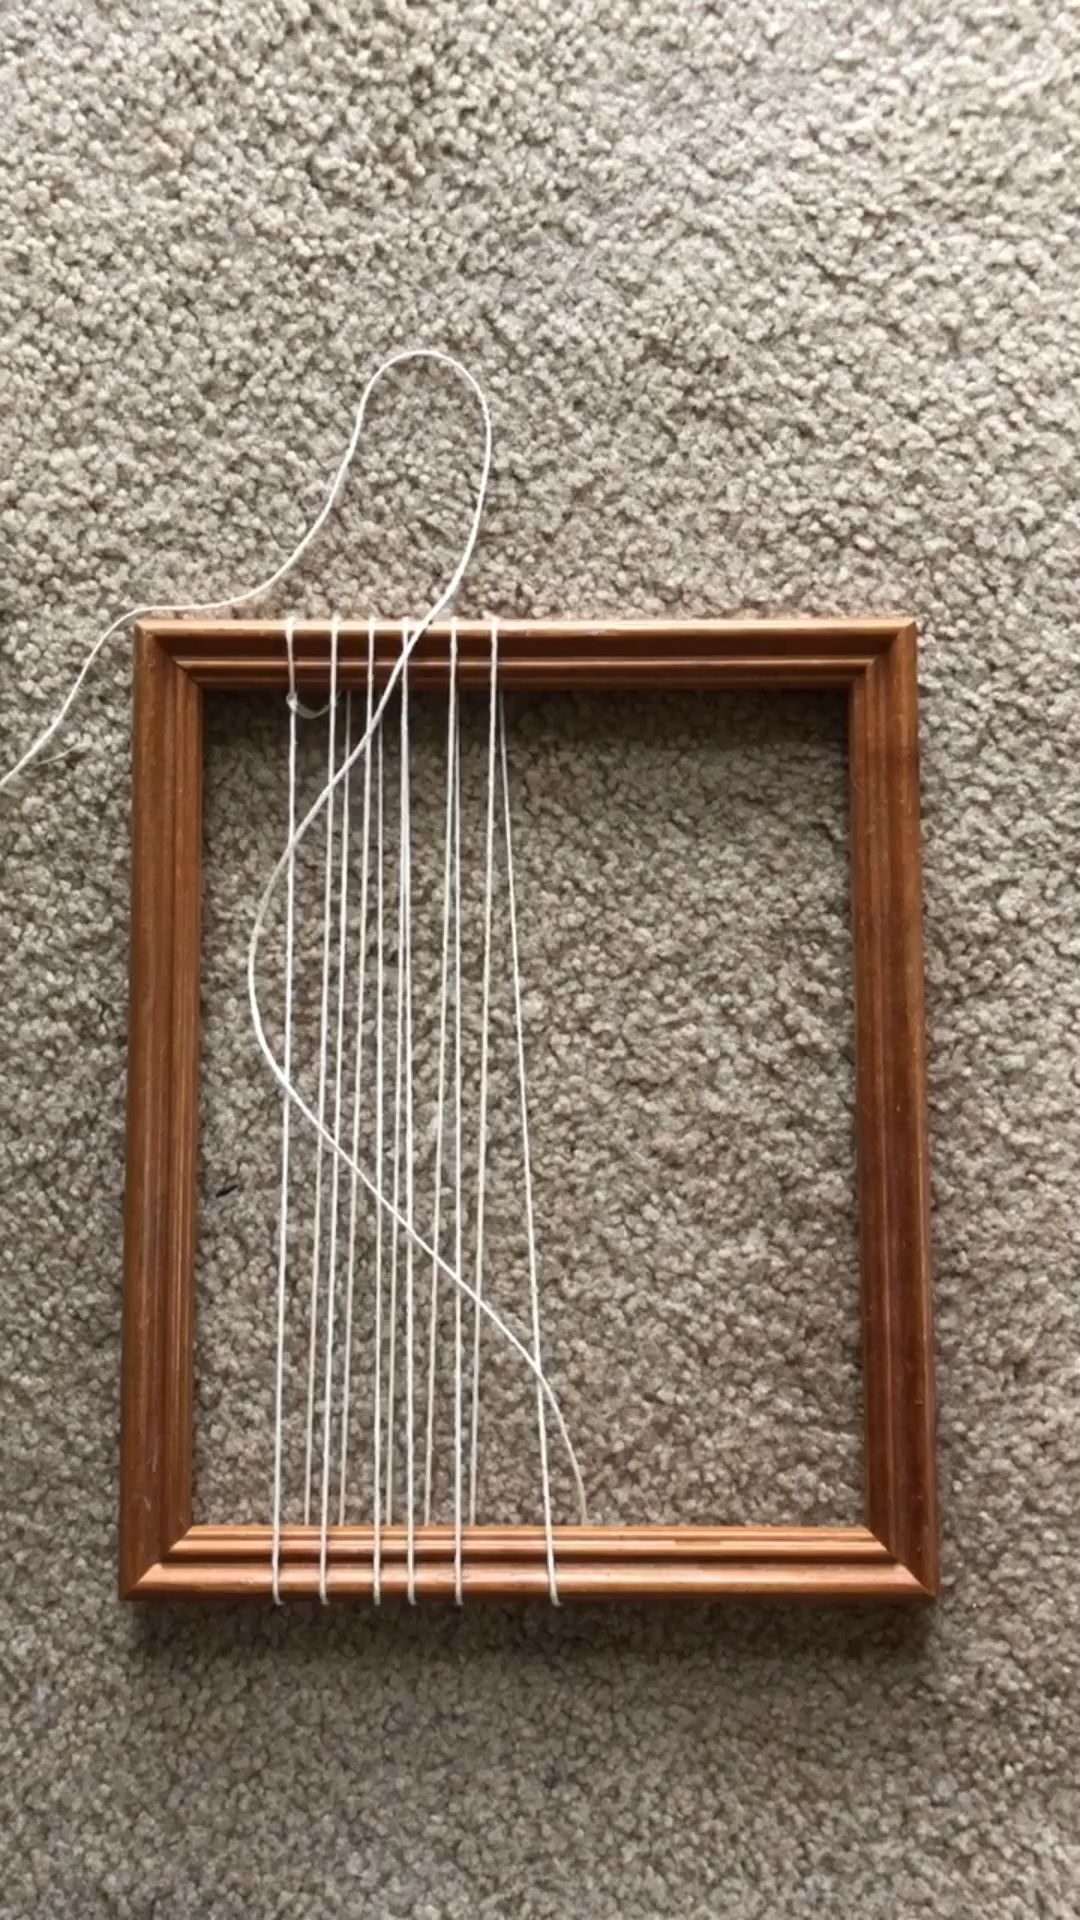 Weaving on a picture frame! Most people have one or two of these lying around. You can easily set one up to weave a tiny tapestry. This short vid shows you how to warp it (wind the string) and start weaving. I use a thick tapestry needle, cotton yarn/string for warping, chunky yarn for weaving, and a fork for packing down the rows nice and tight. ✨ .